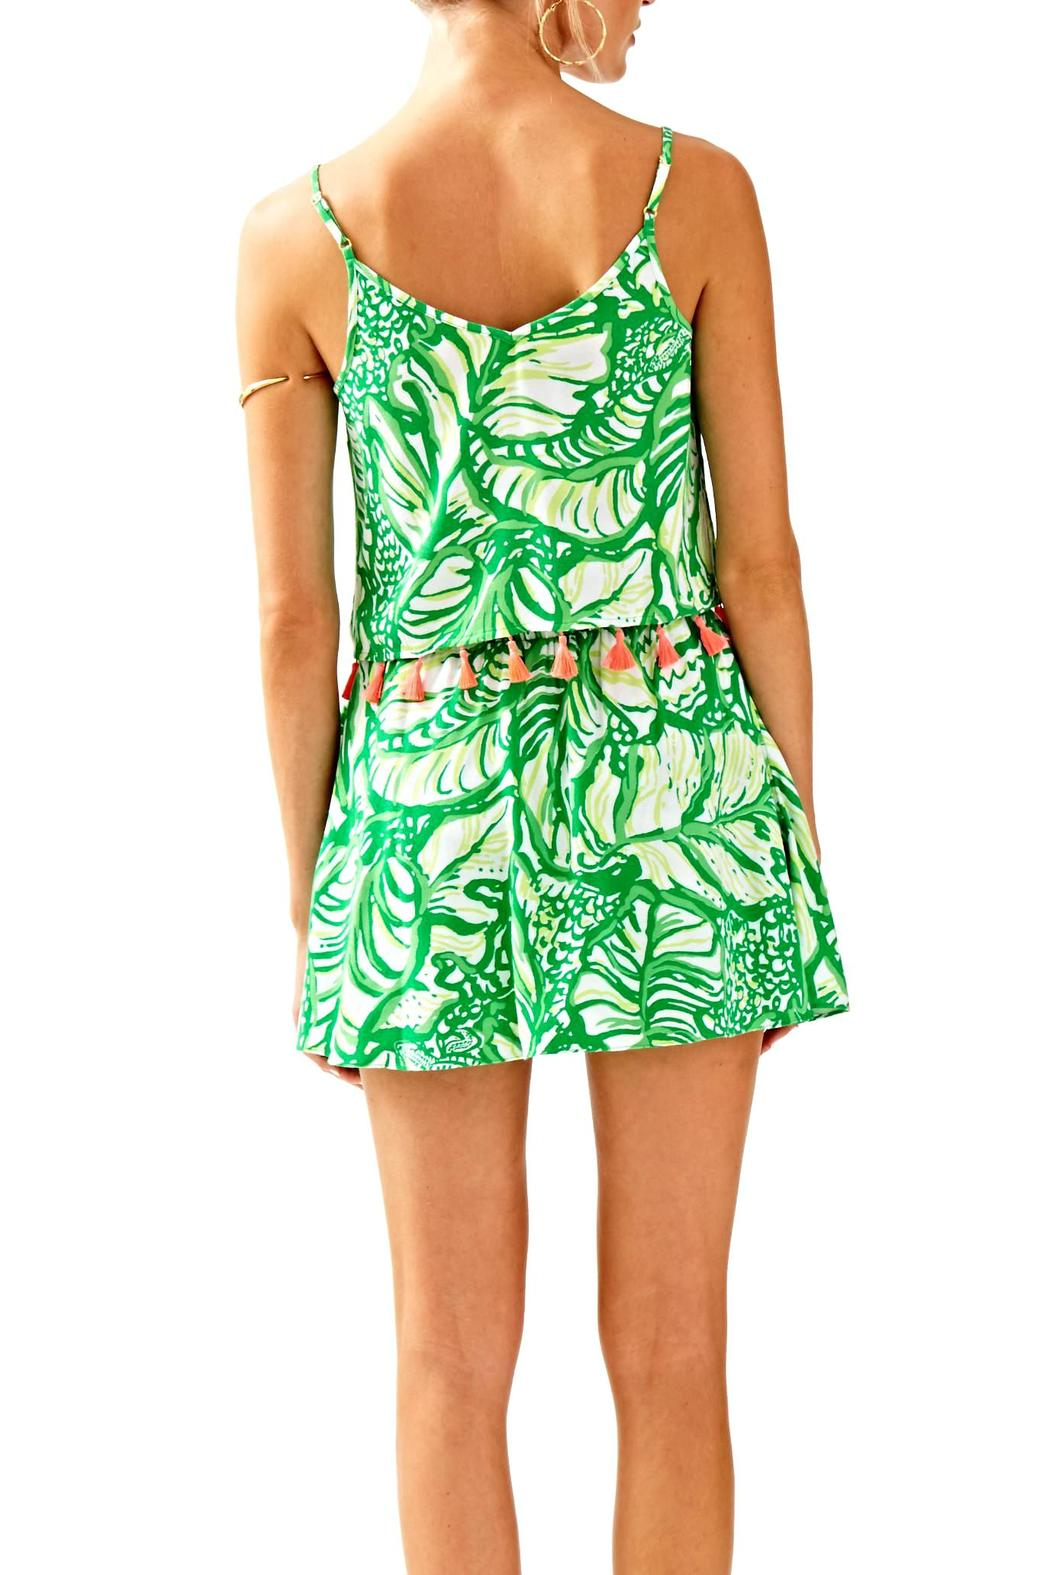 8648469c6f Lilly Pulitzer Ramona Ensemble Set from Sandestin Golf and Beach ...